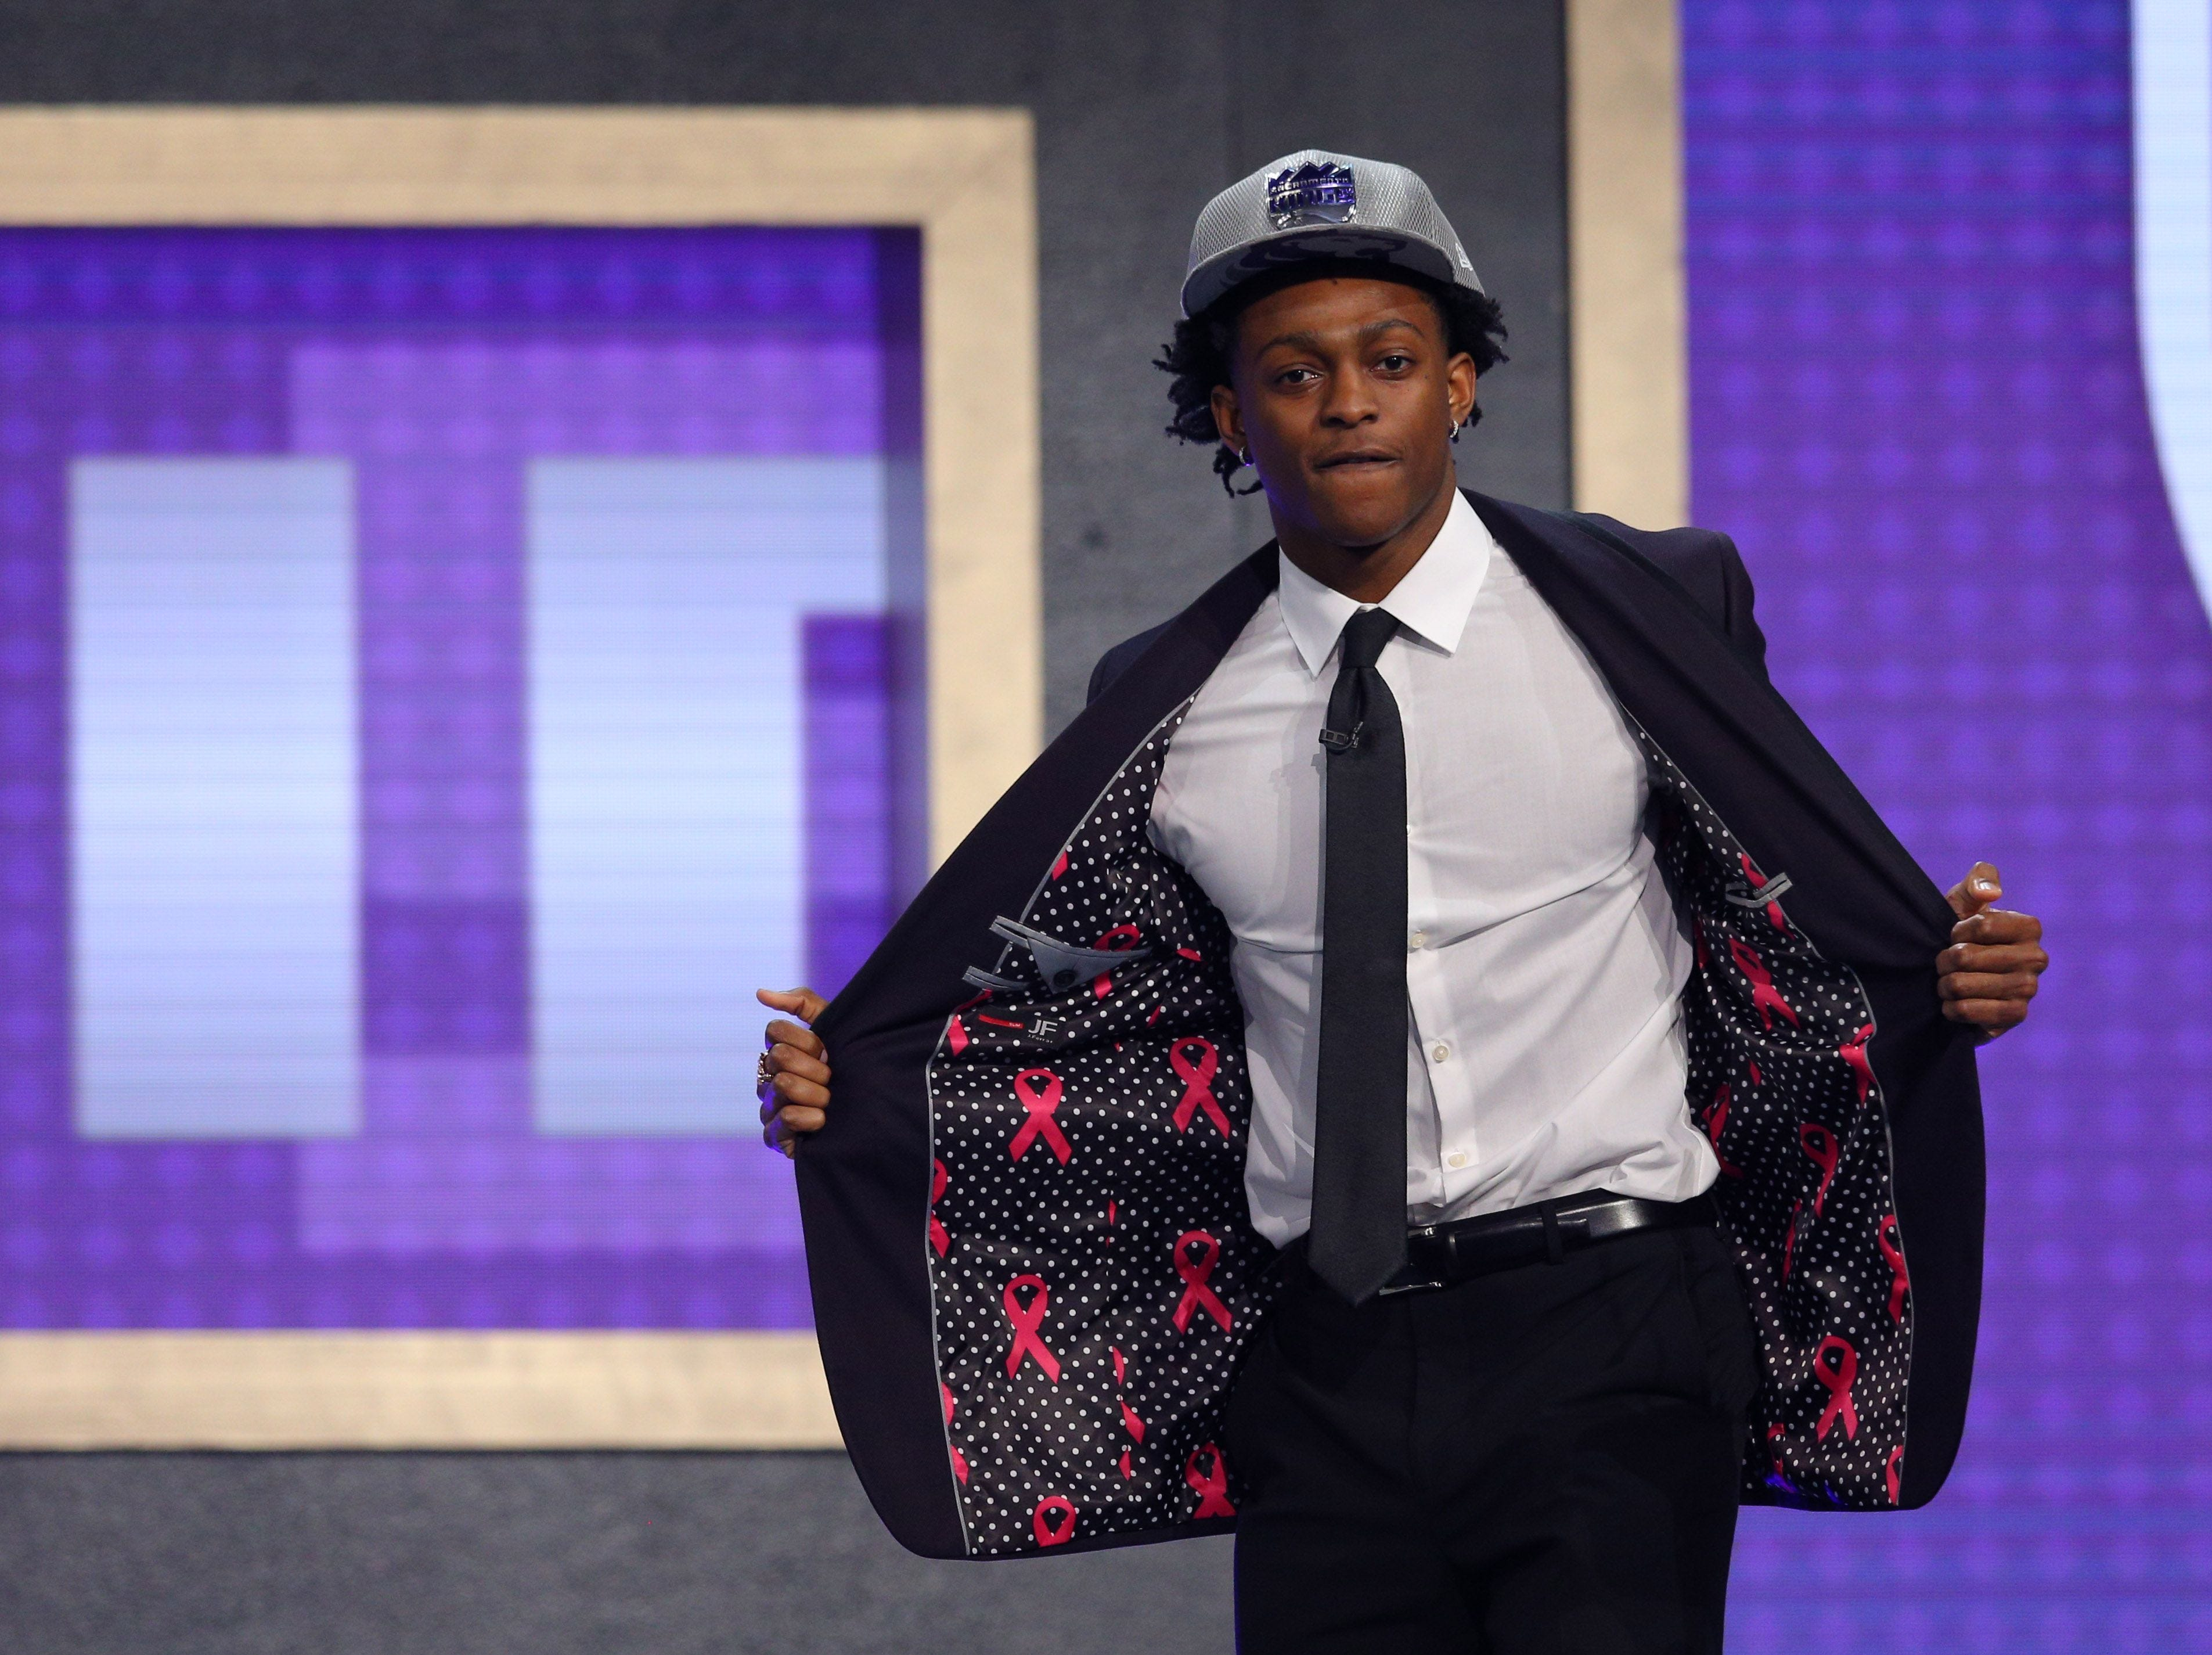 NBA draft: Top five goes all freshmen for first time in history